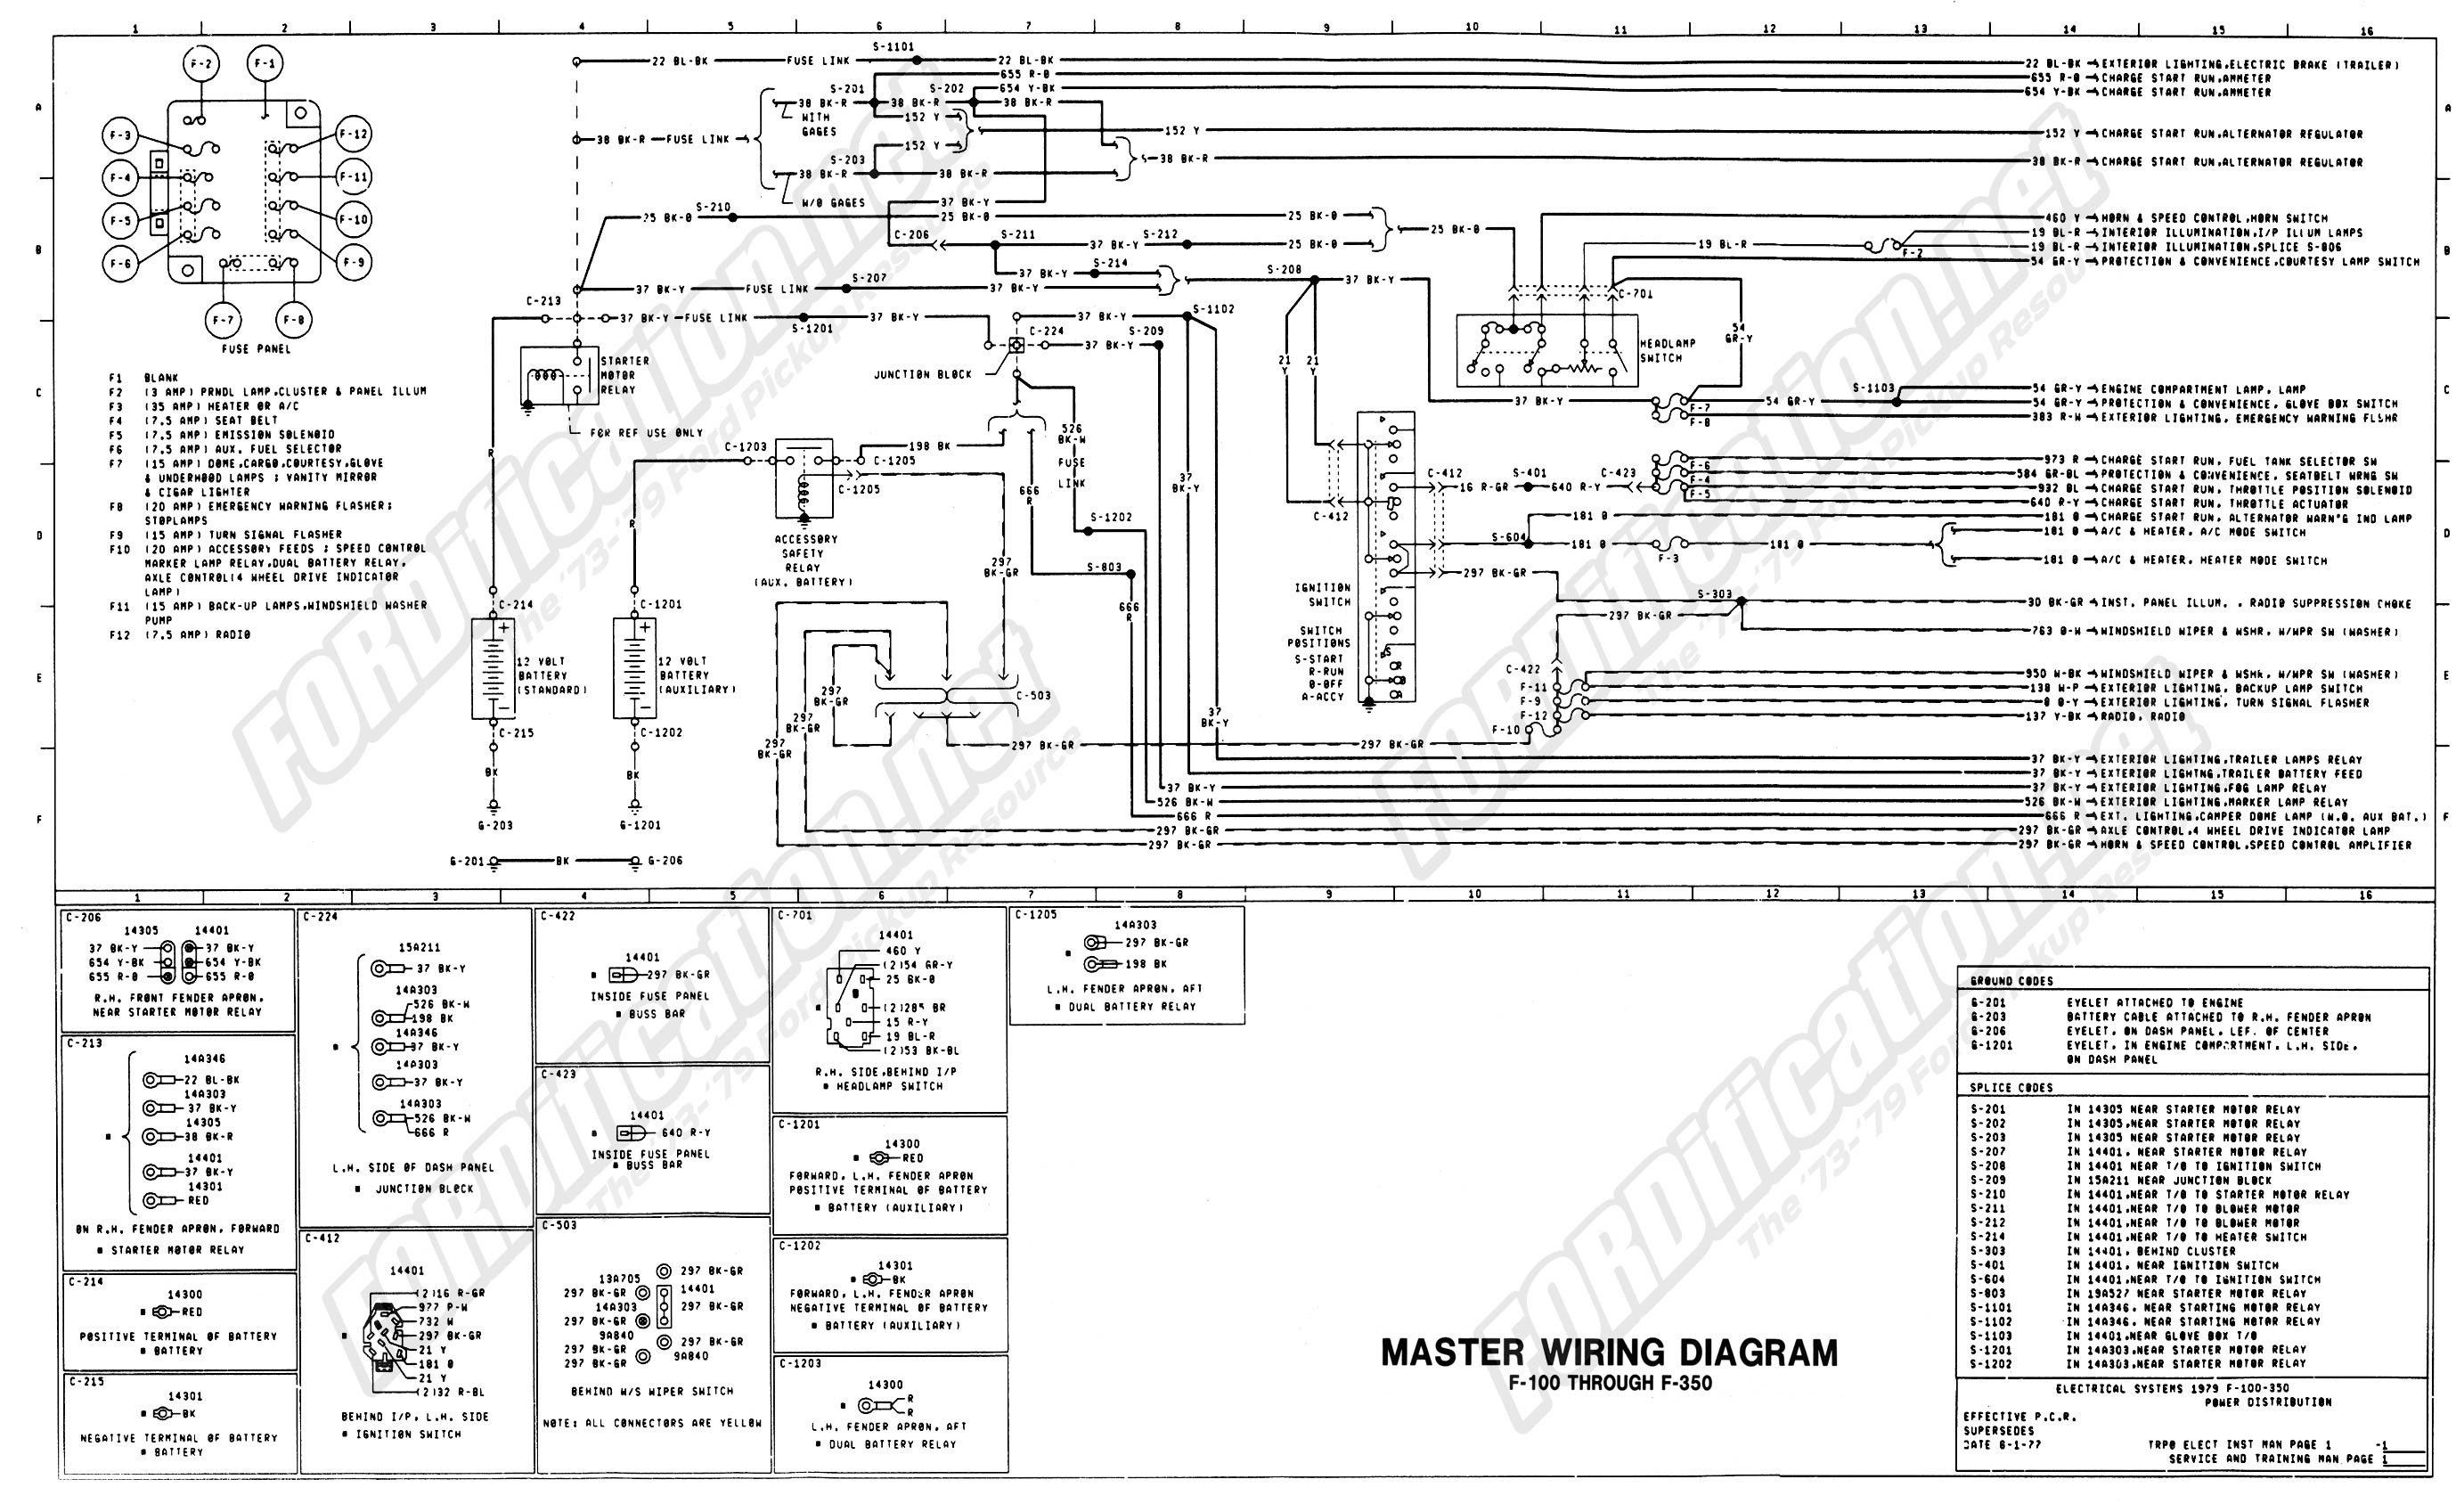 1997 ford Explorer Engine Diagram 79 F150 solenoid Wiring Diagram ford Truck Enthusiasts forums Of 1997 ford Explorer Engine Diagram I Need the Wiring Diagram for A 1996 ford Explorer Radio 1997 Also